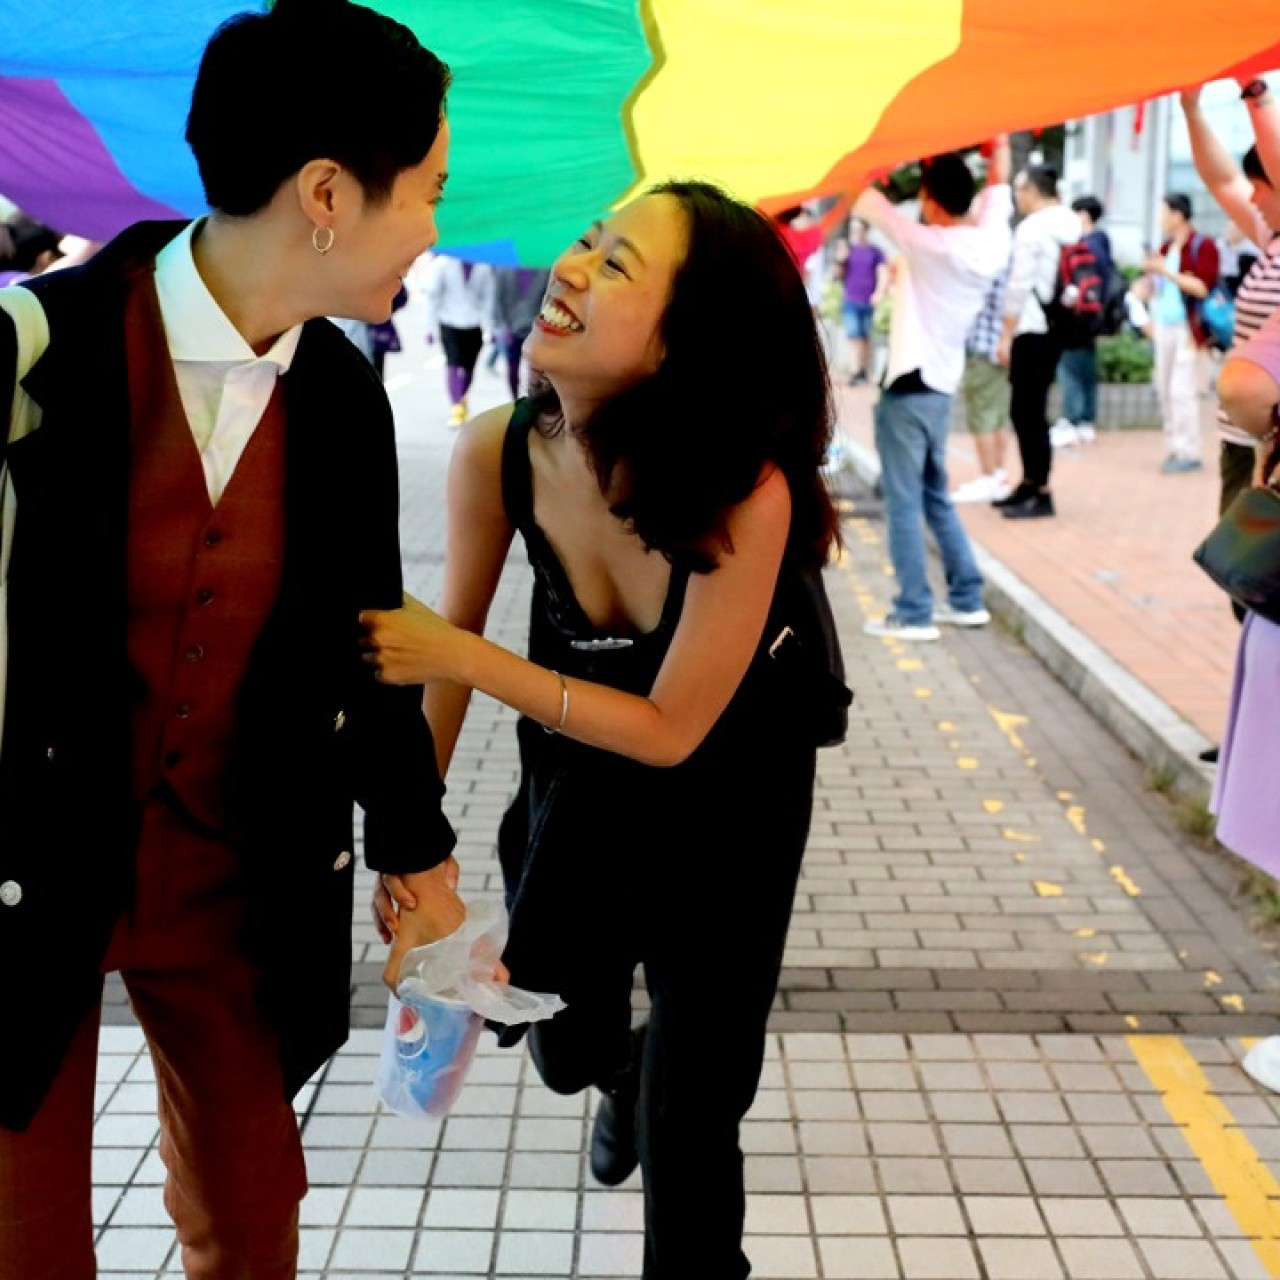 How same-sex stereotypes can leave some LGBT people in the